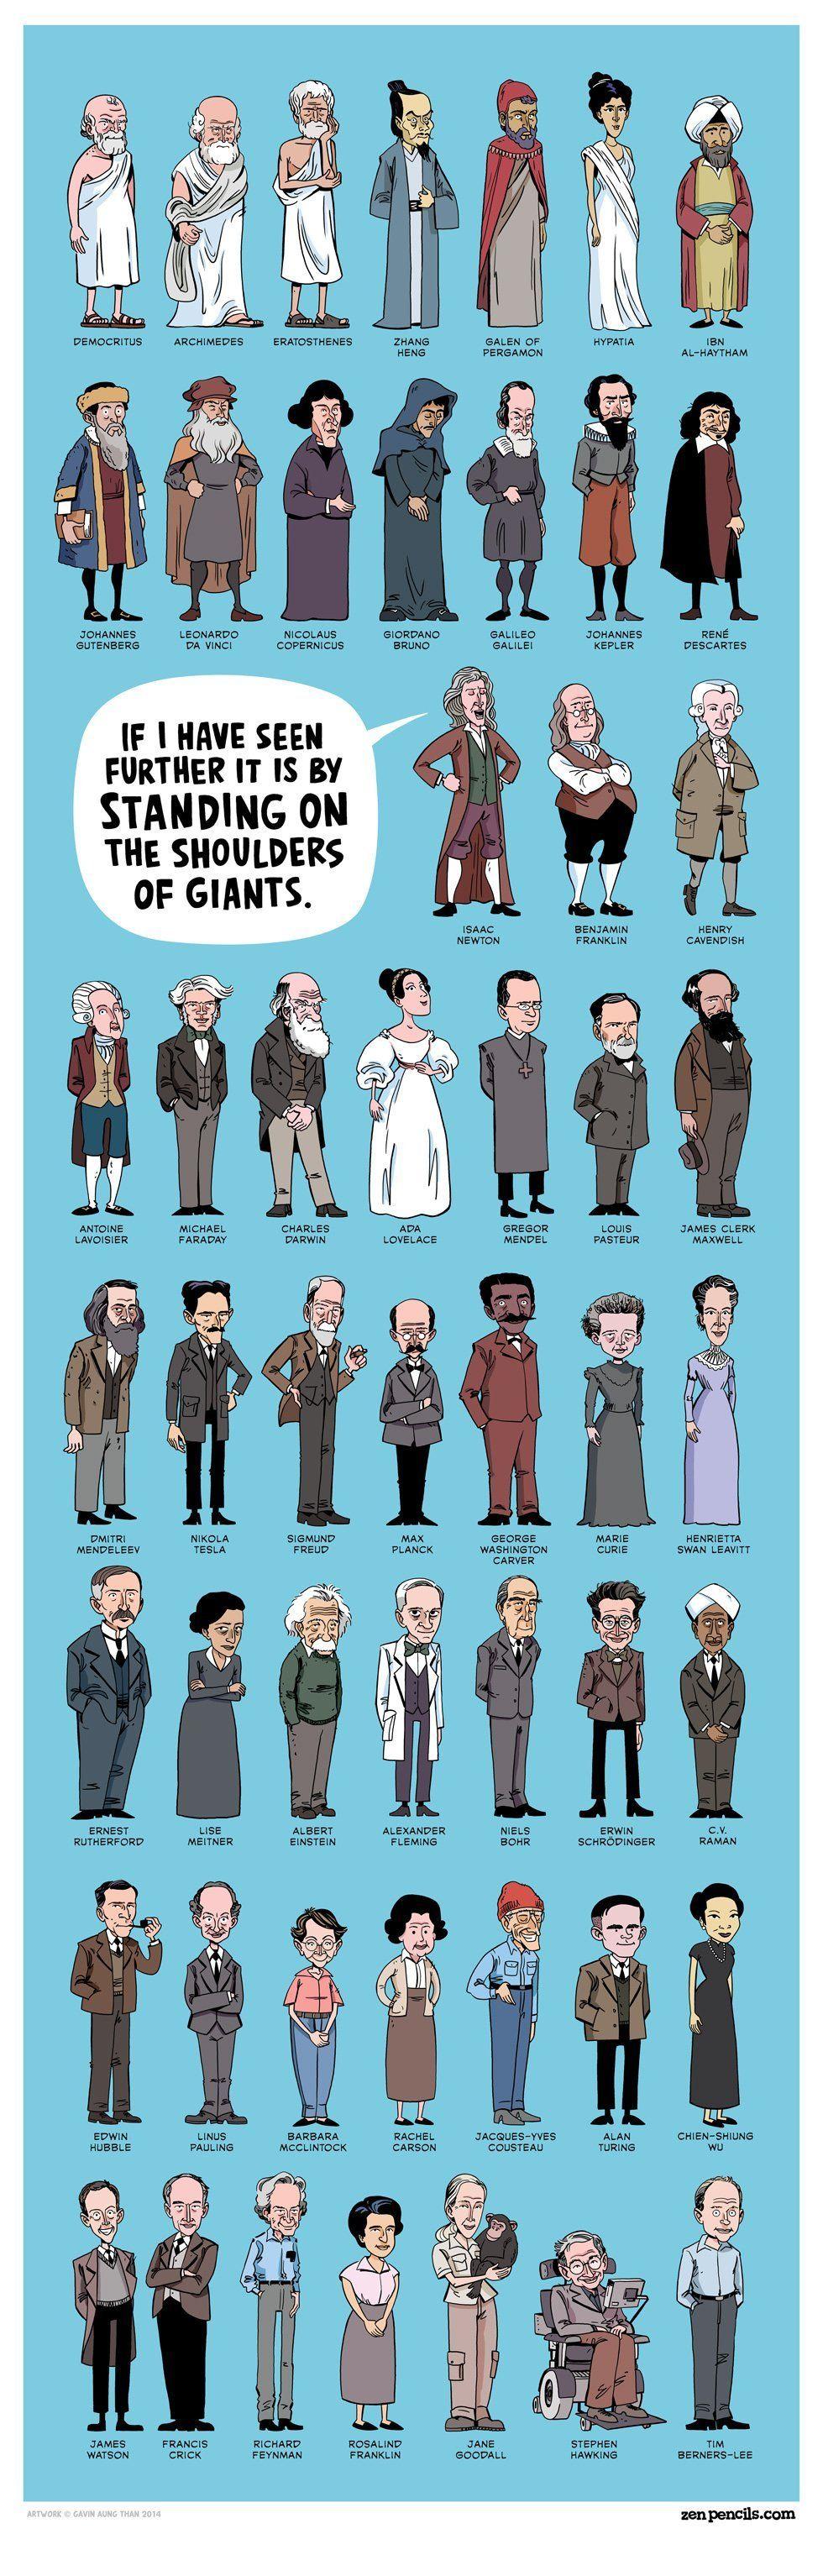 """Check this cartoon from Zen Pencils which has been based on Newton's famous quote: """"If I have seen further it is by standing on the shoulders of Giants.""""  http://zenpencils.com/comic/152-on-the-shoulders-of-giants-the-science-all-stars-poster/"""